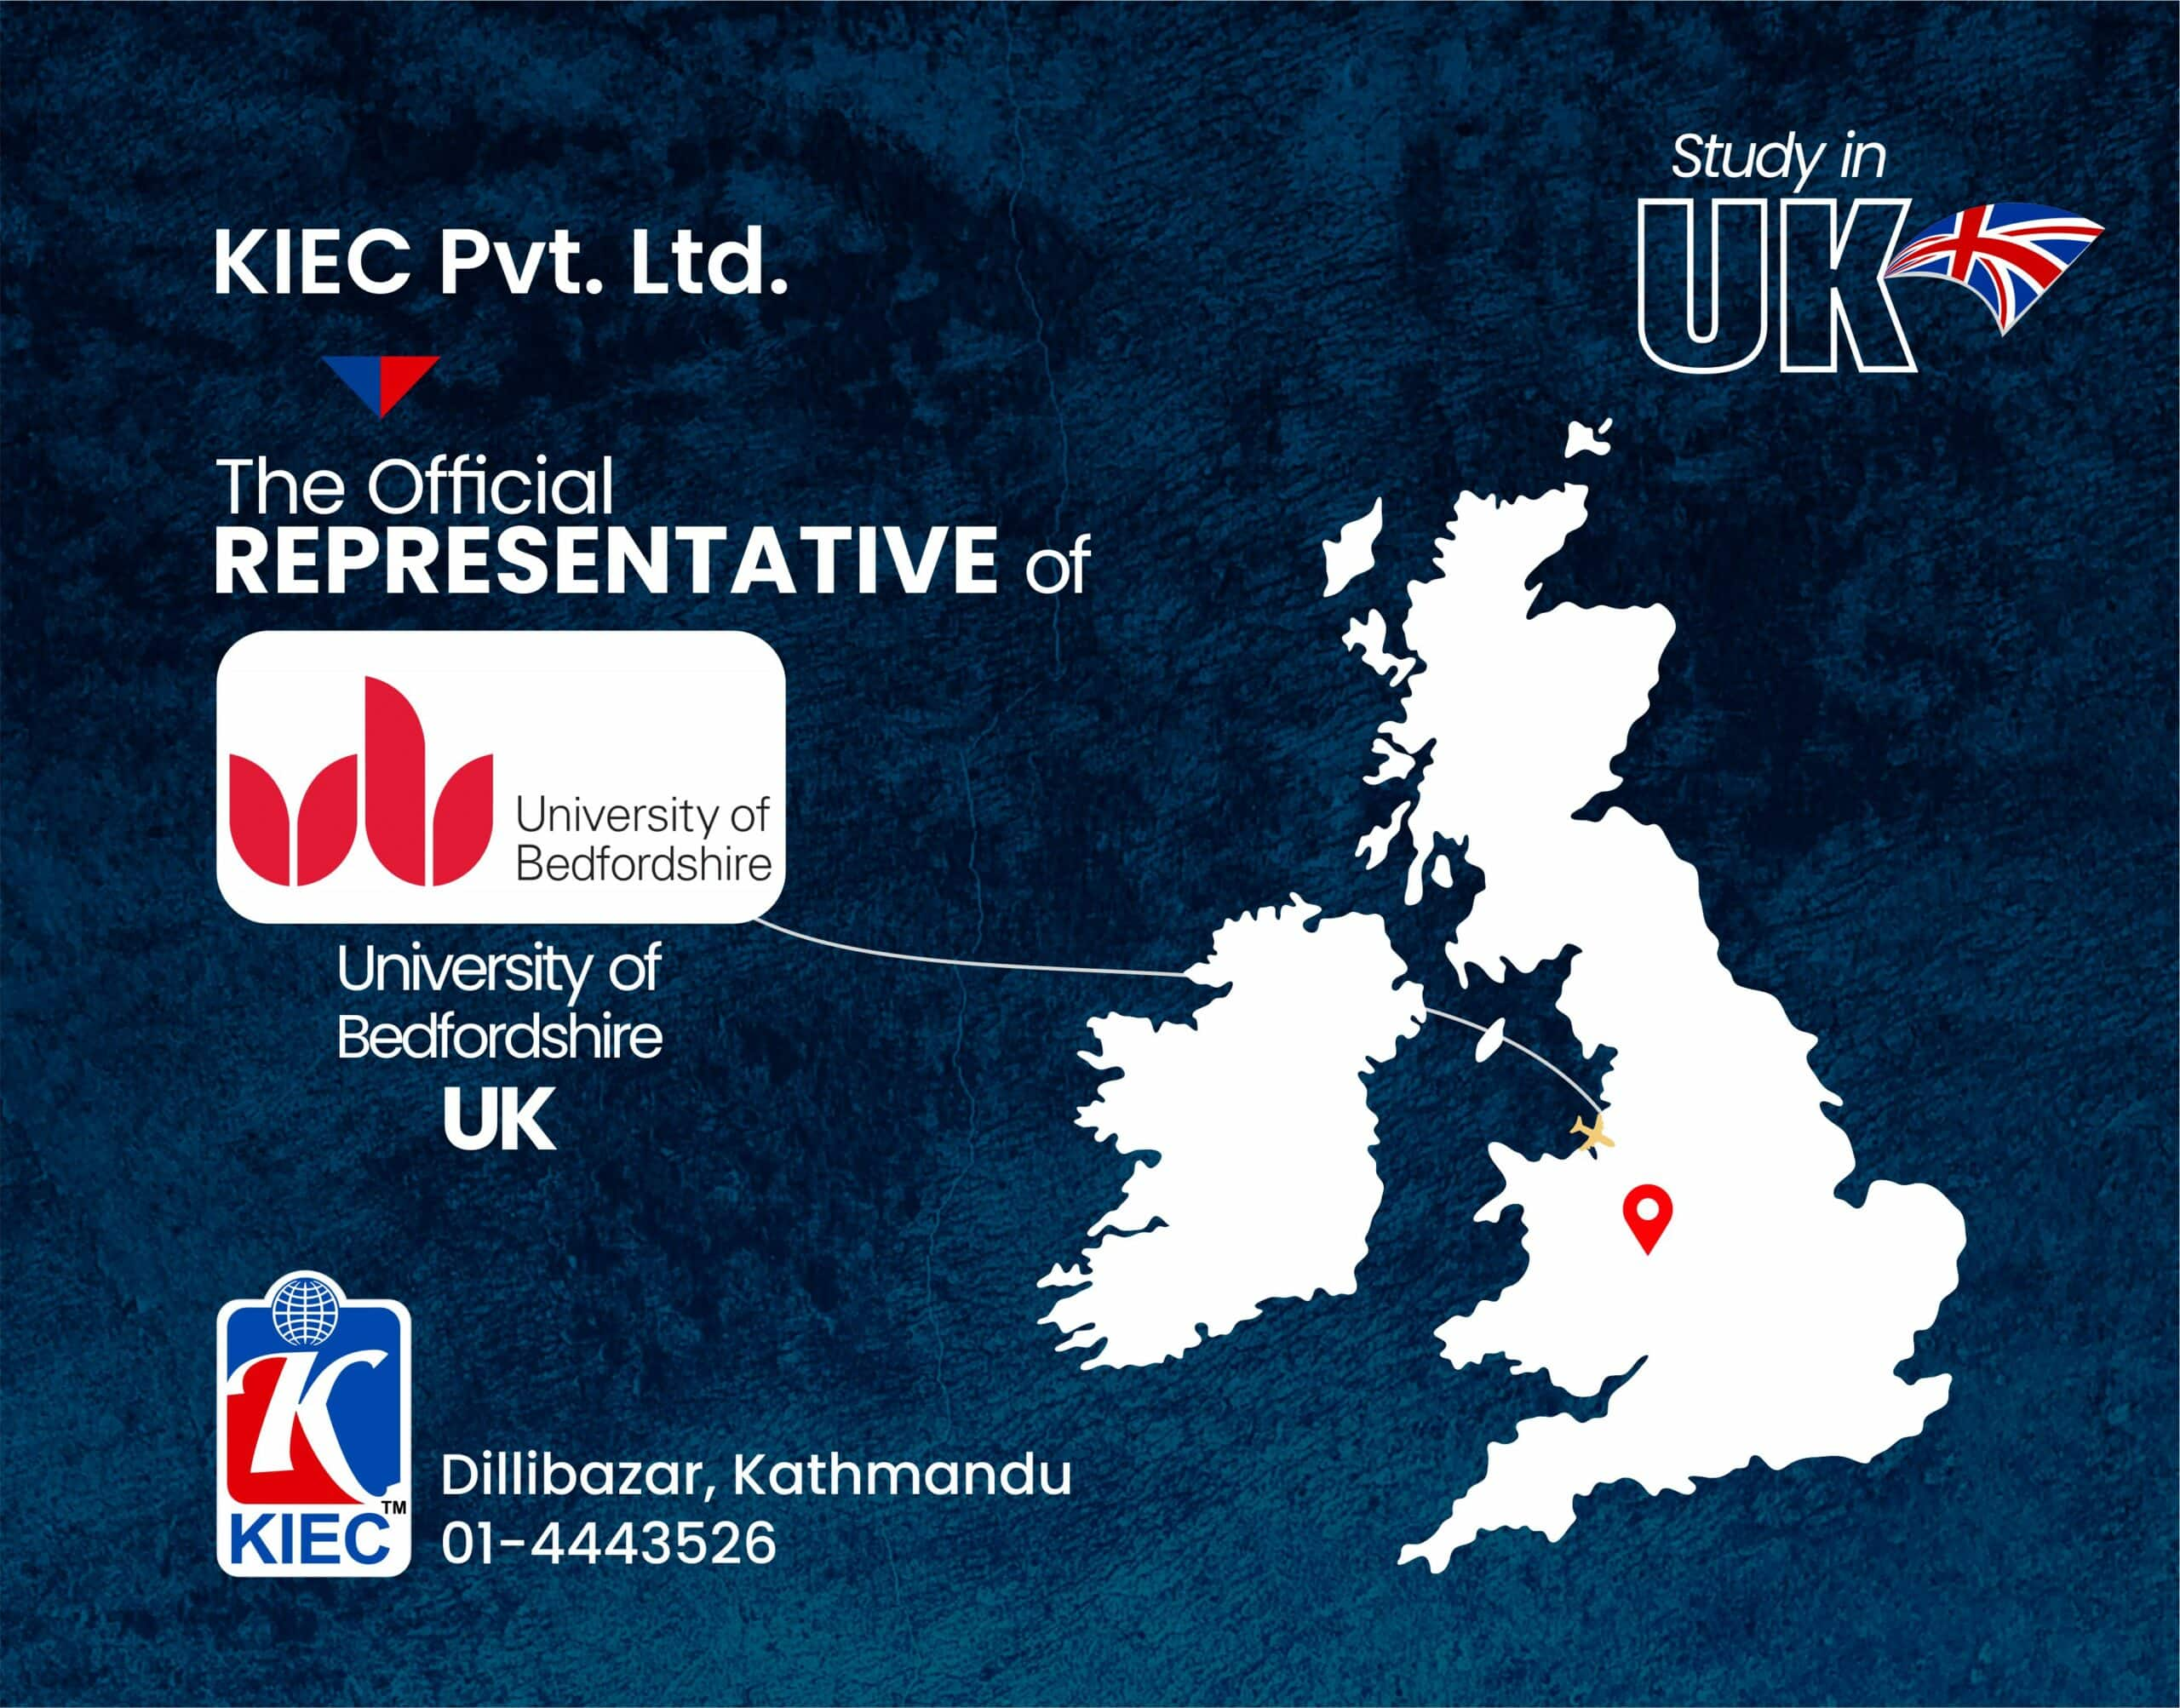 KIEC Official Representative Of University of Bedfordshire, UK